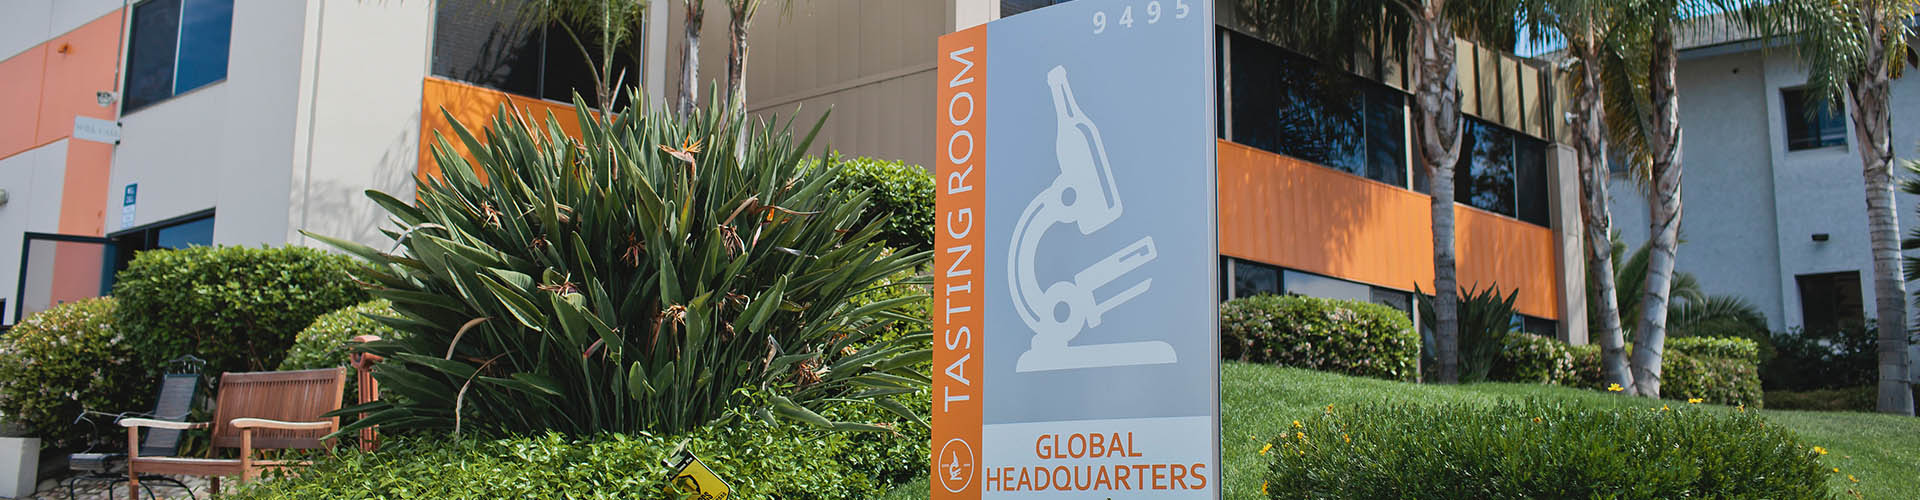 Image of White Labs sign at Global Headquarters